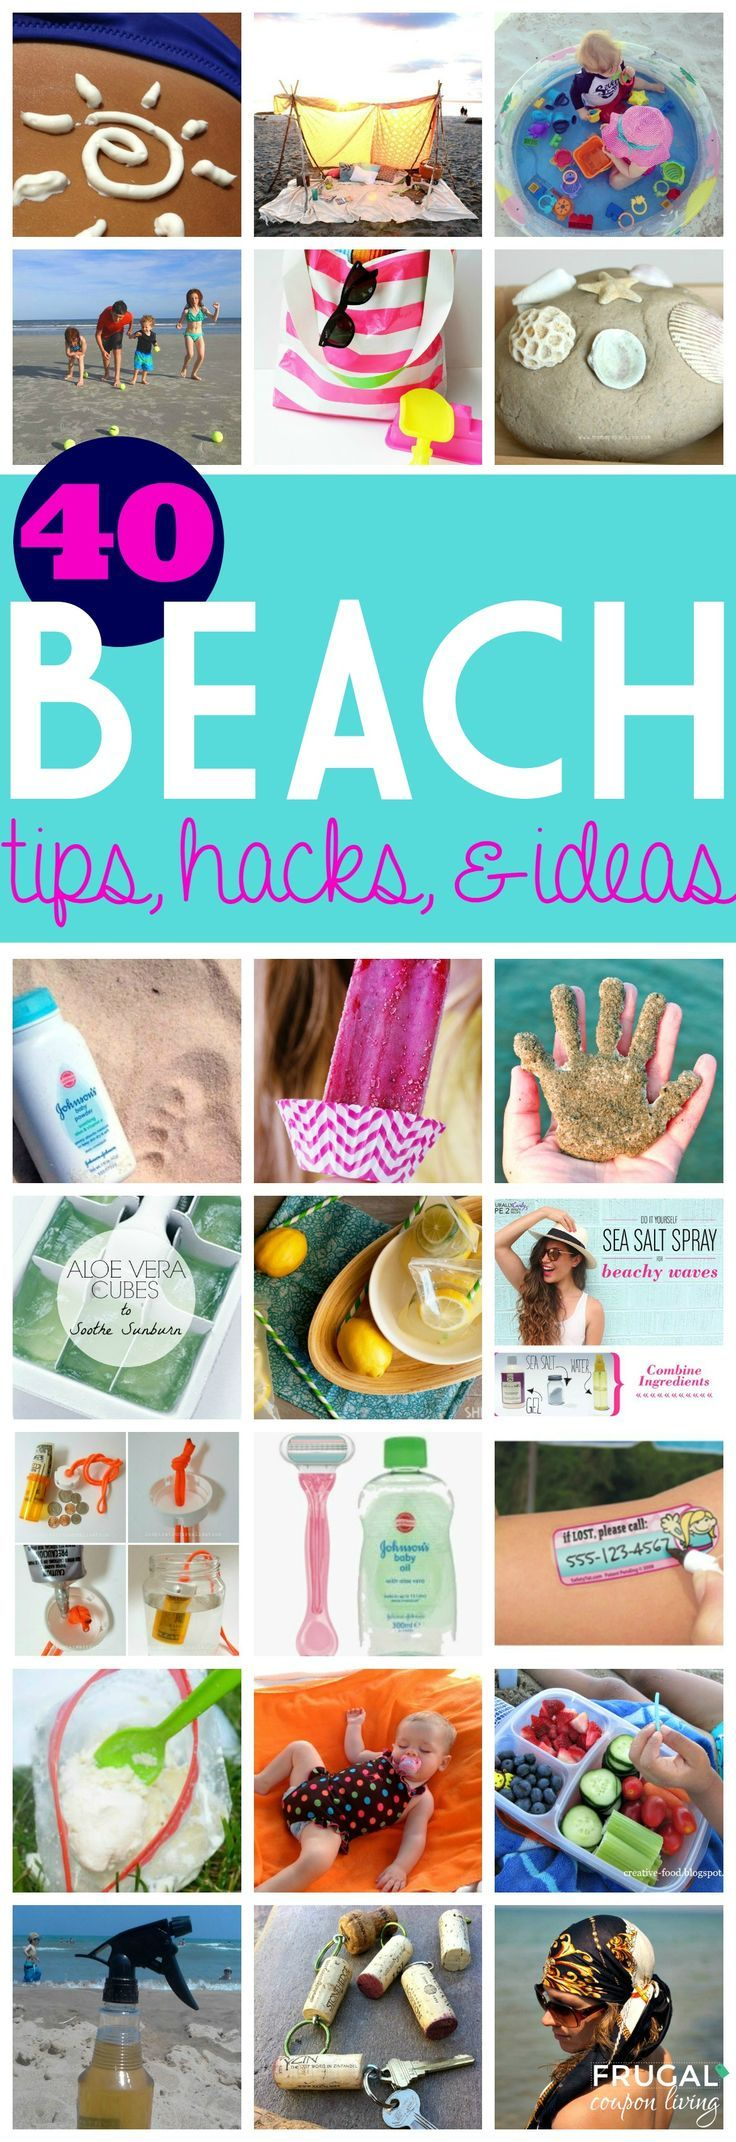 40 Beach Tips and Tricks - Hacks and Ideas for Your Trip to the Sand. Round-Up o...